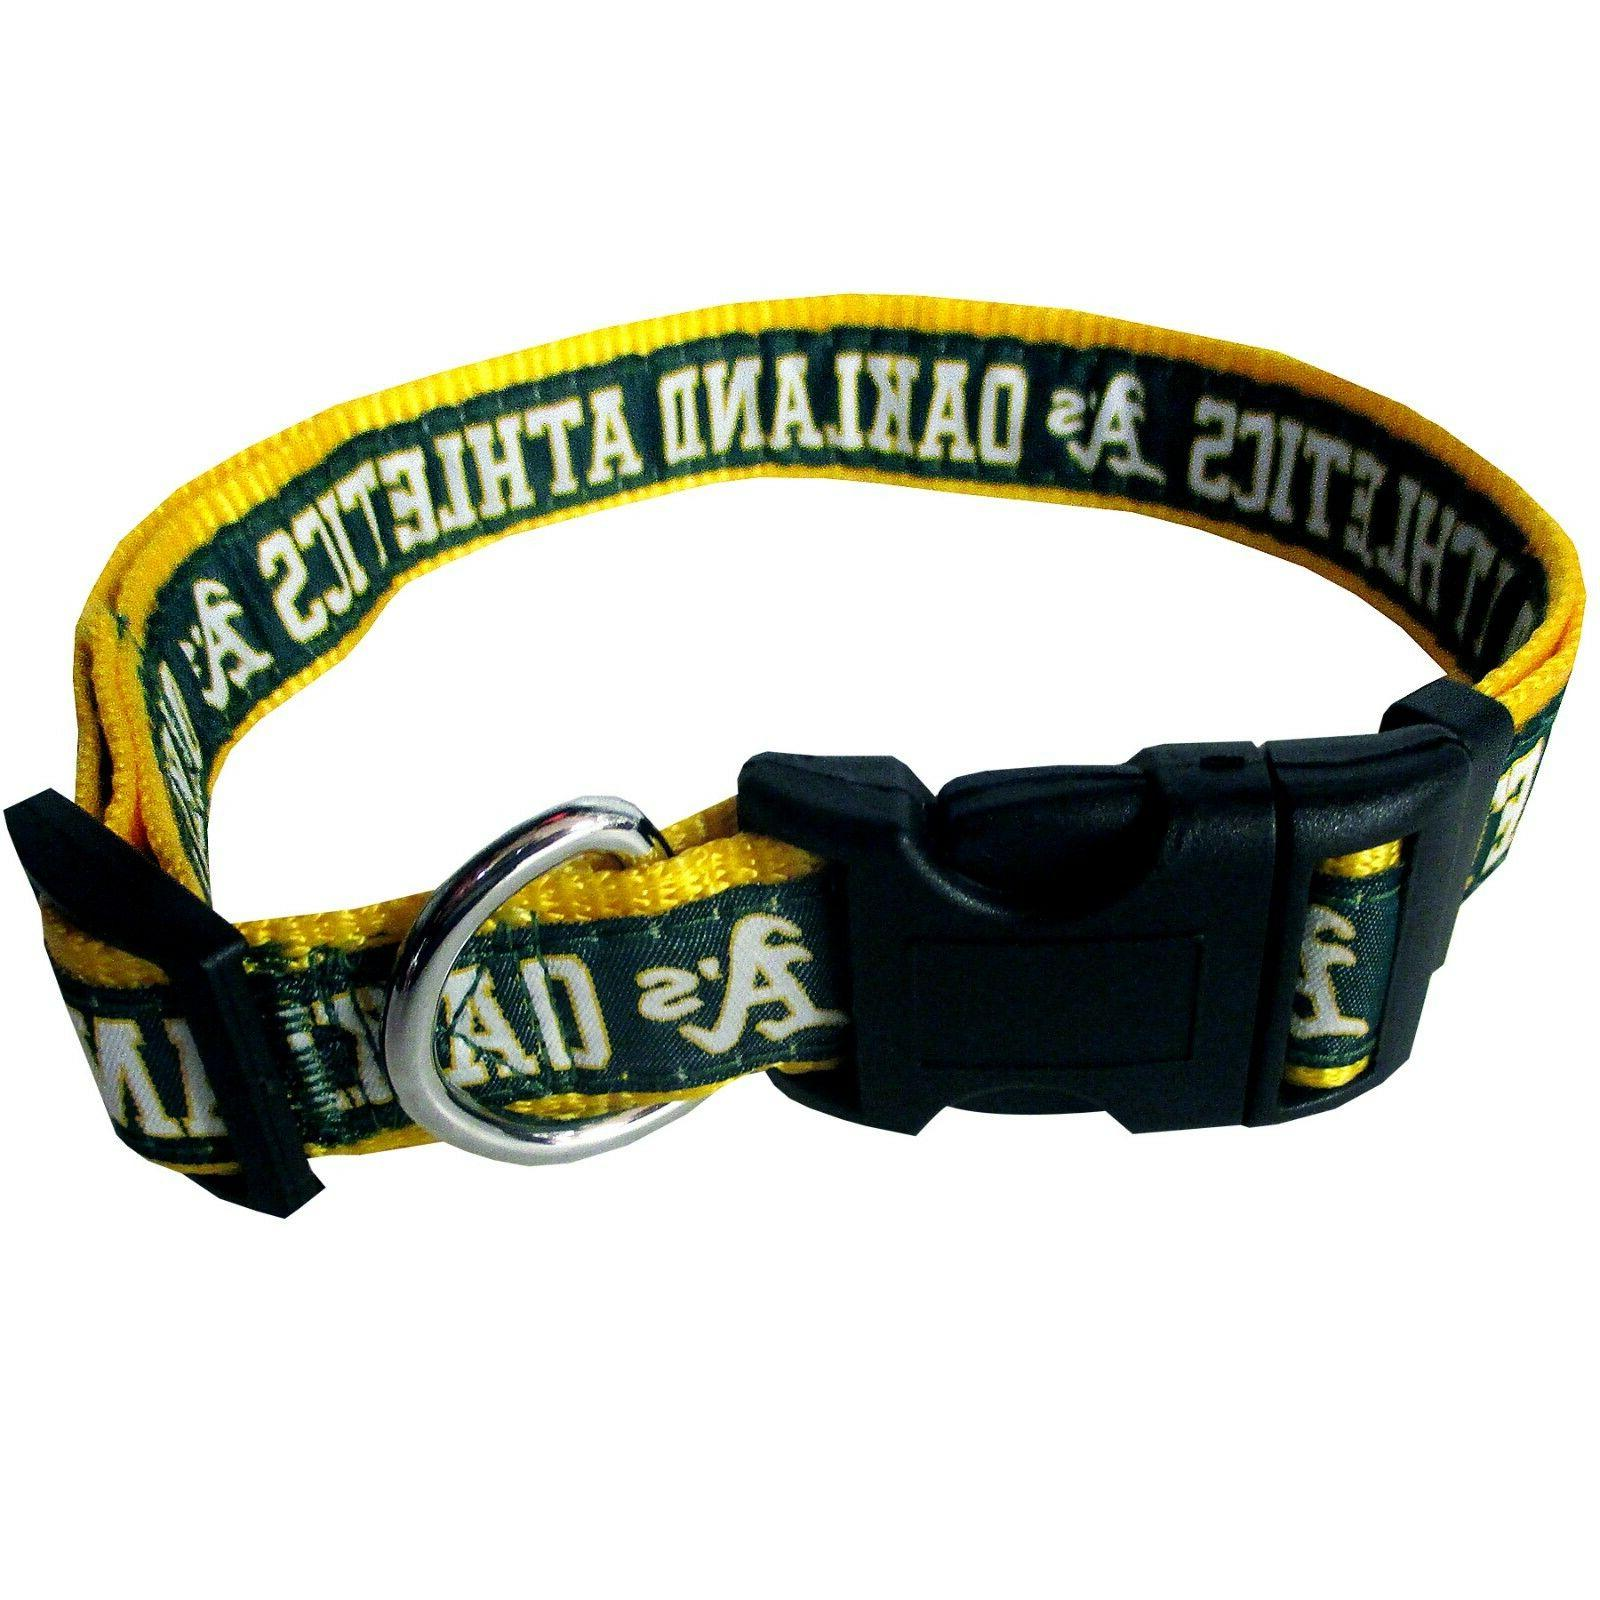 Pets First Collar, Teams Available. New Baseball